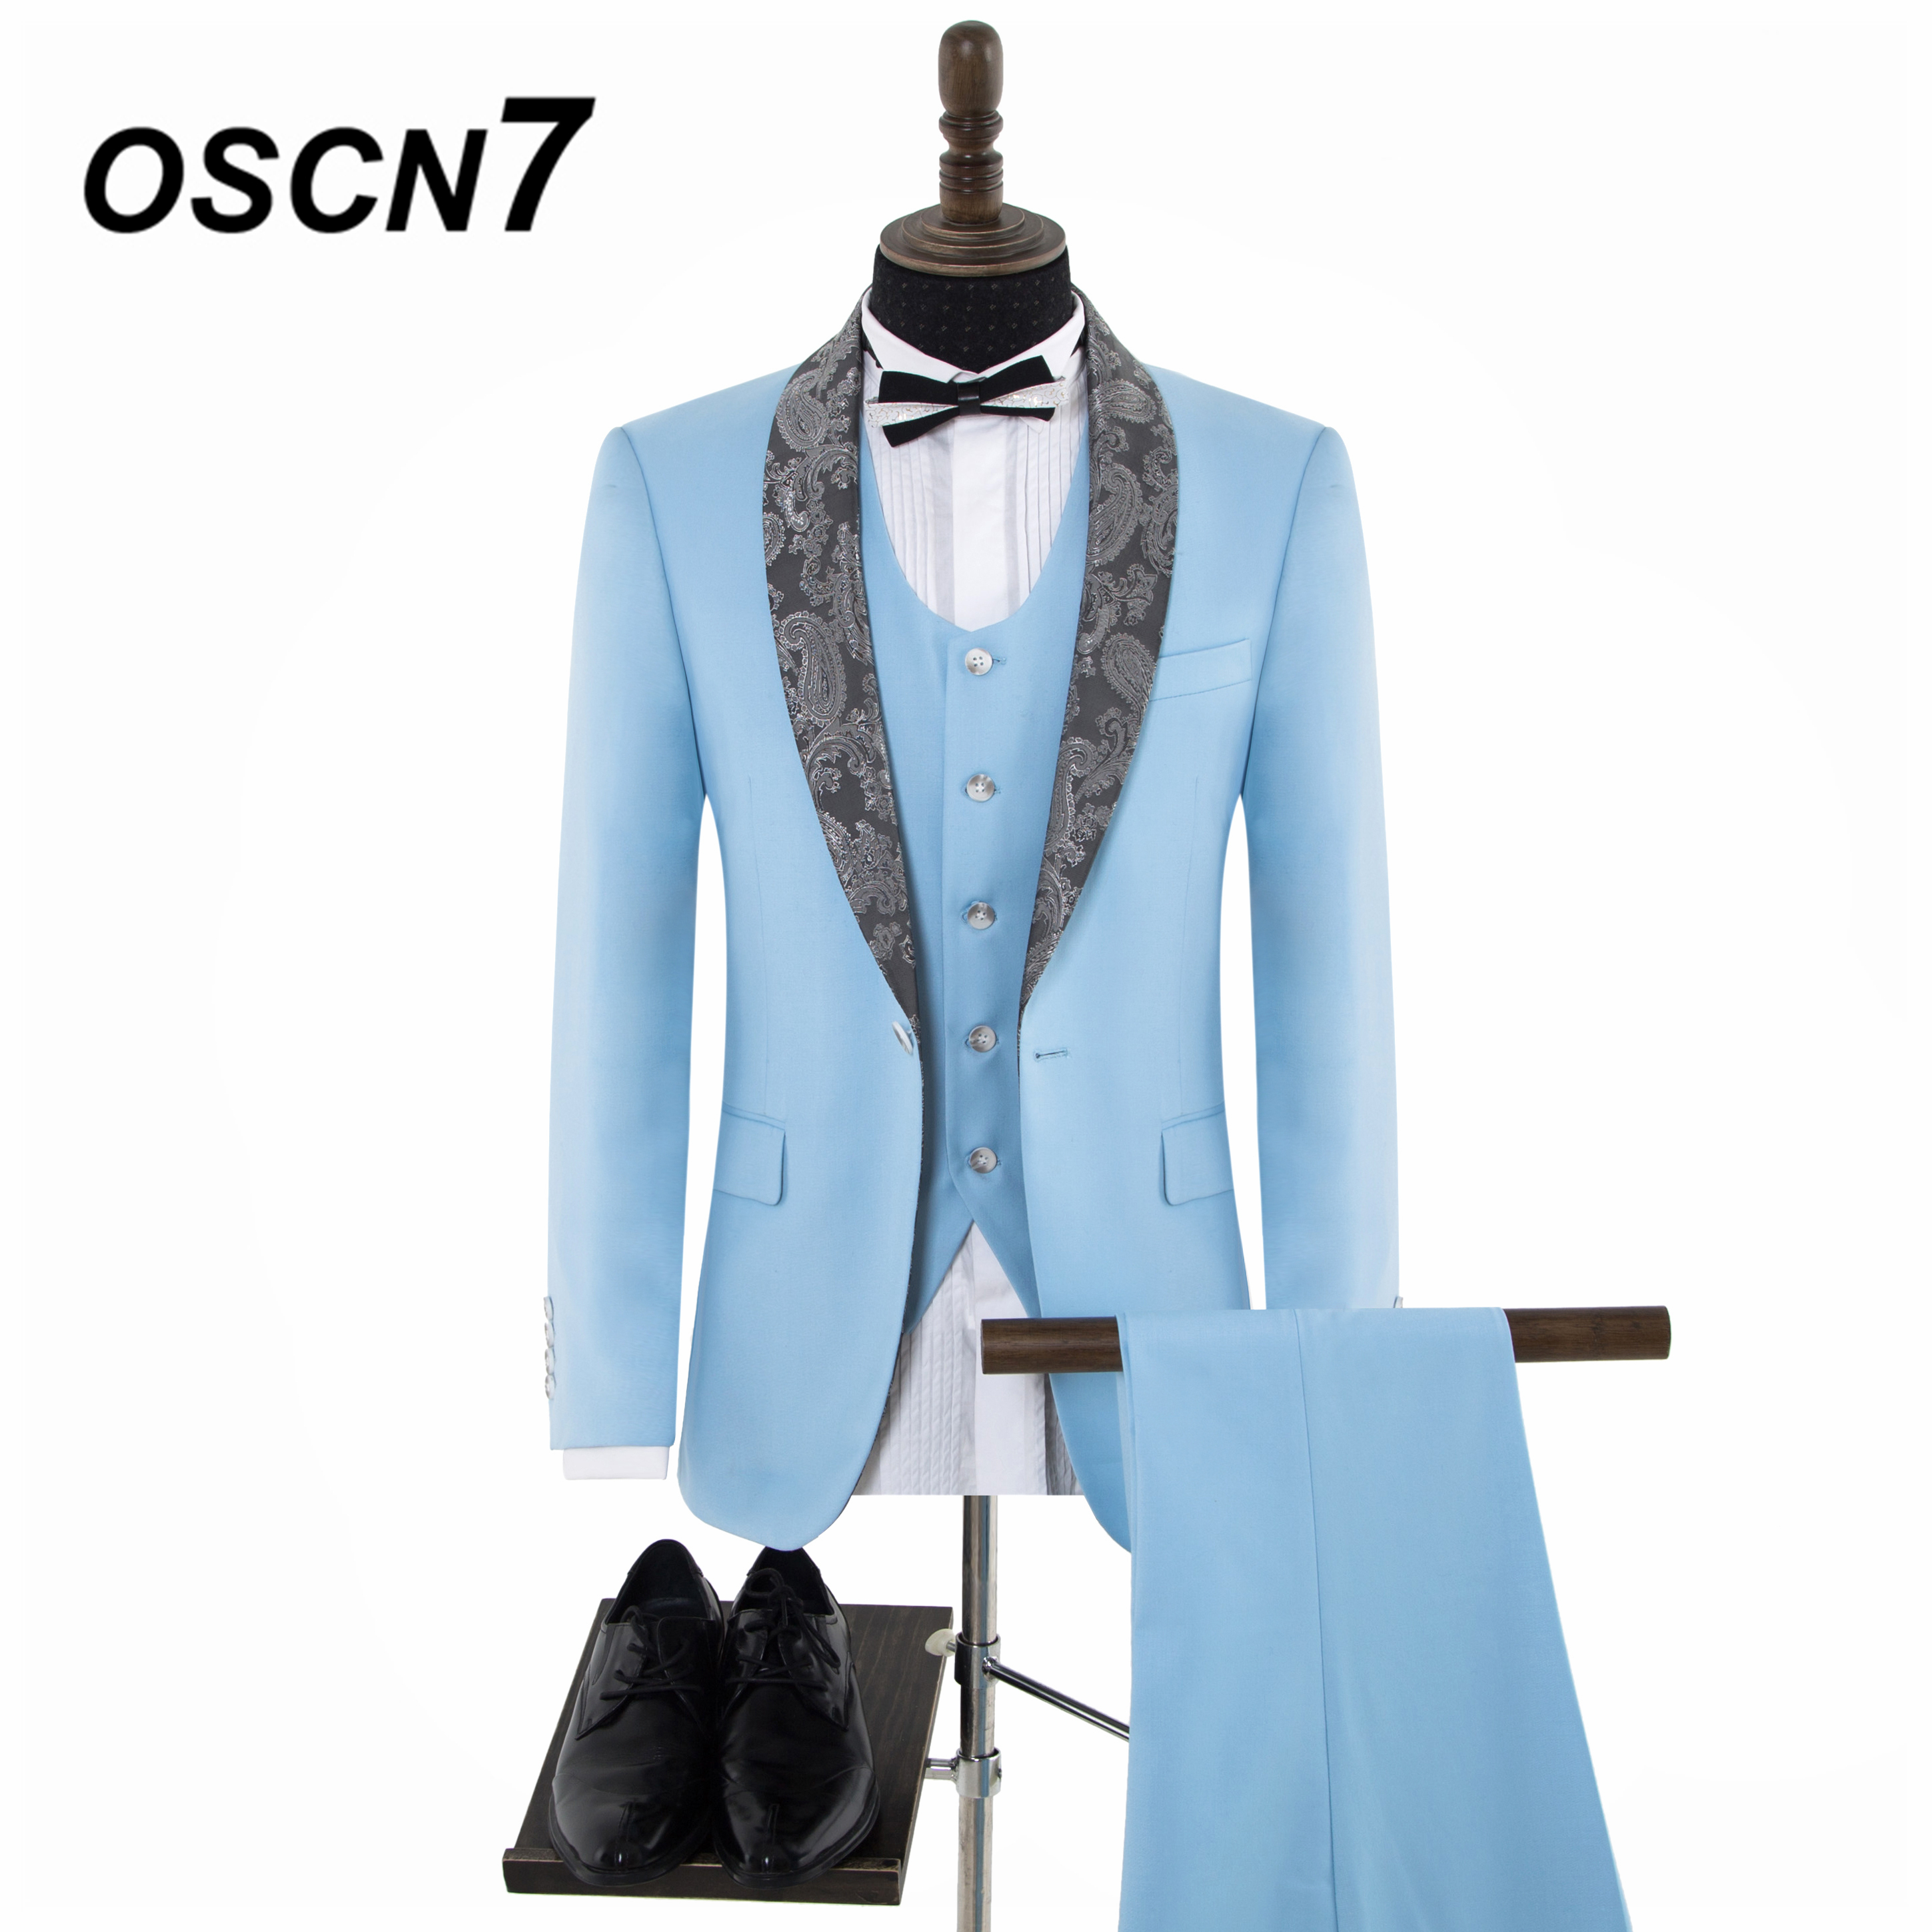 2ef6ac410de OSCN7 Custom Wool High end Cashew print Shawl Lapels Tailor Made Suits Men  3PCS Suit Men Brand Clothing LB WVT 0008 80-in Tailor-made Suits from Men s  ...